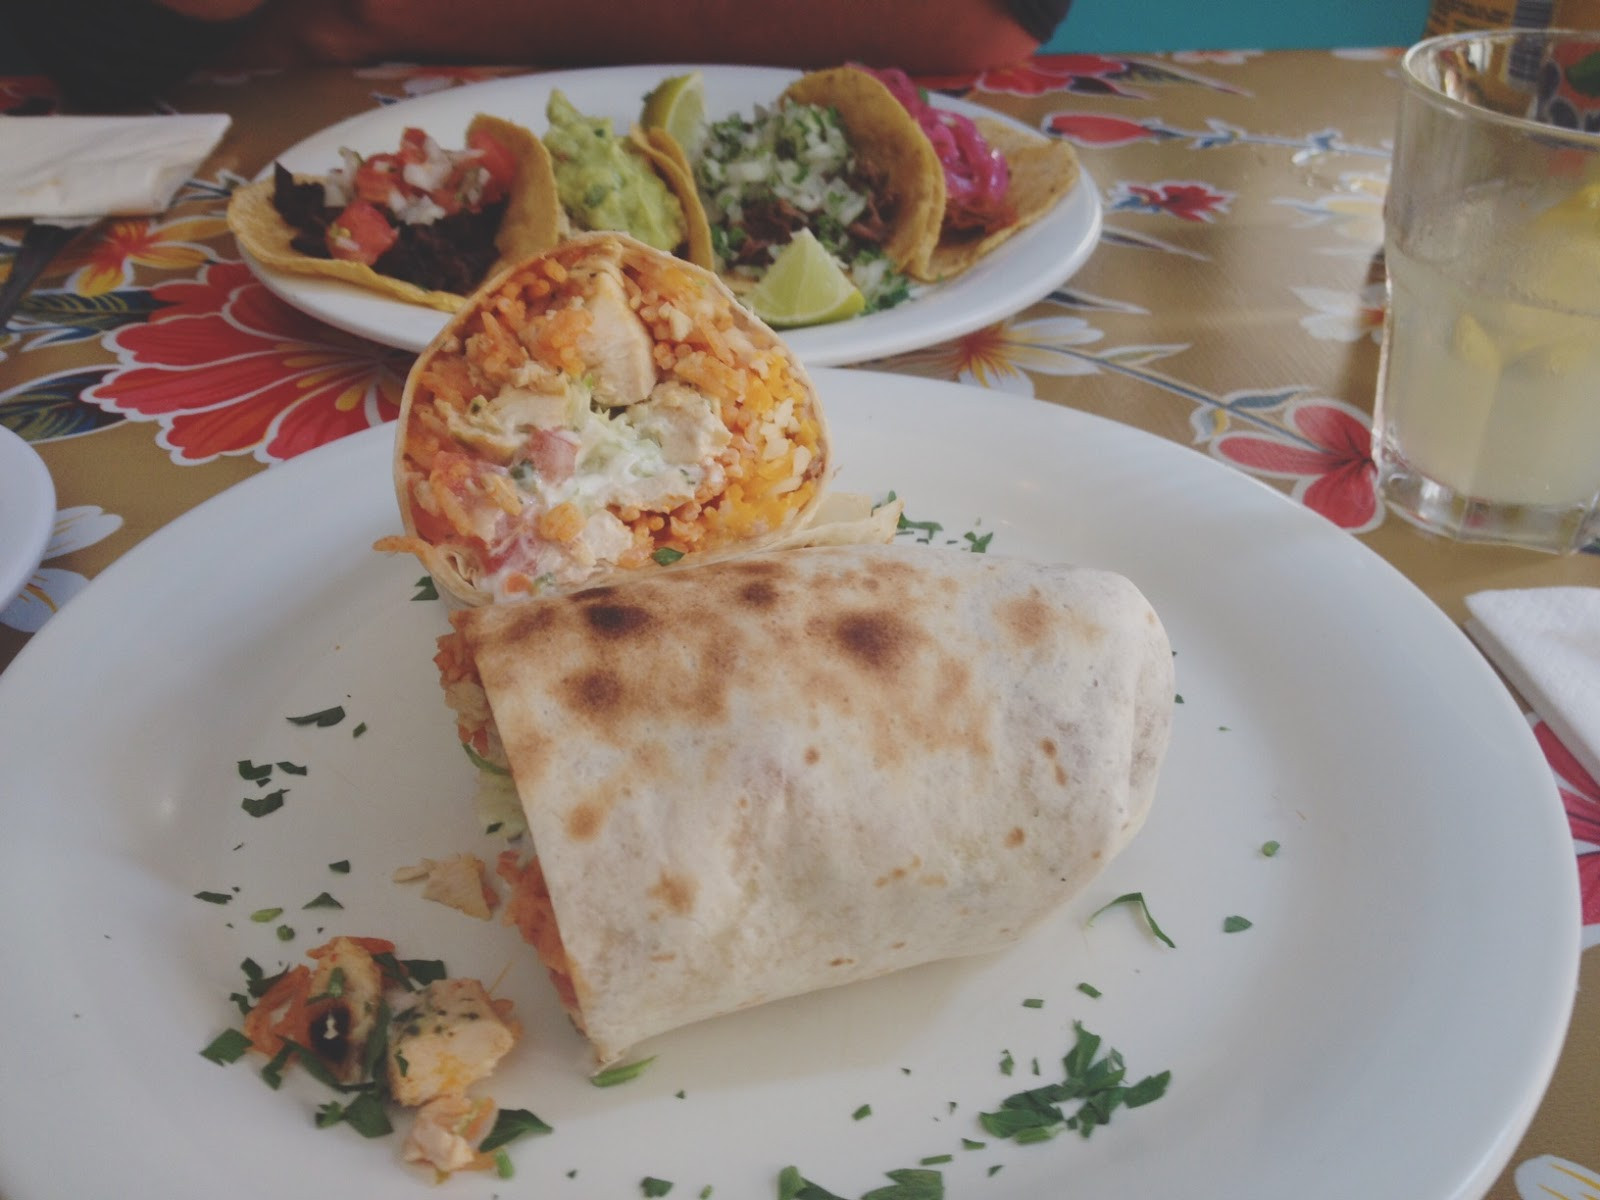 Burrito by Rosa Negra (Barcelona) - Mexican Food Restaurant